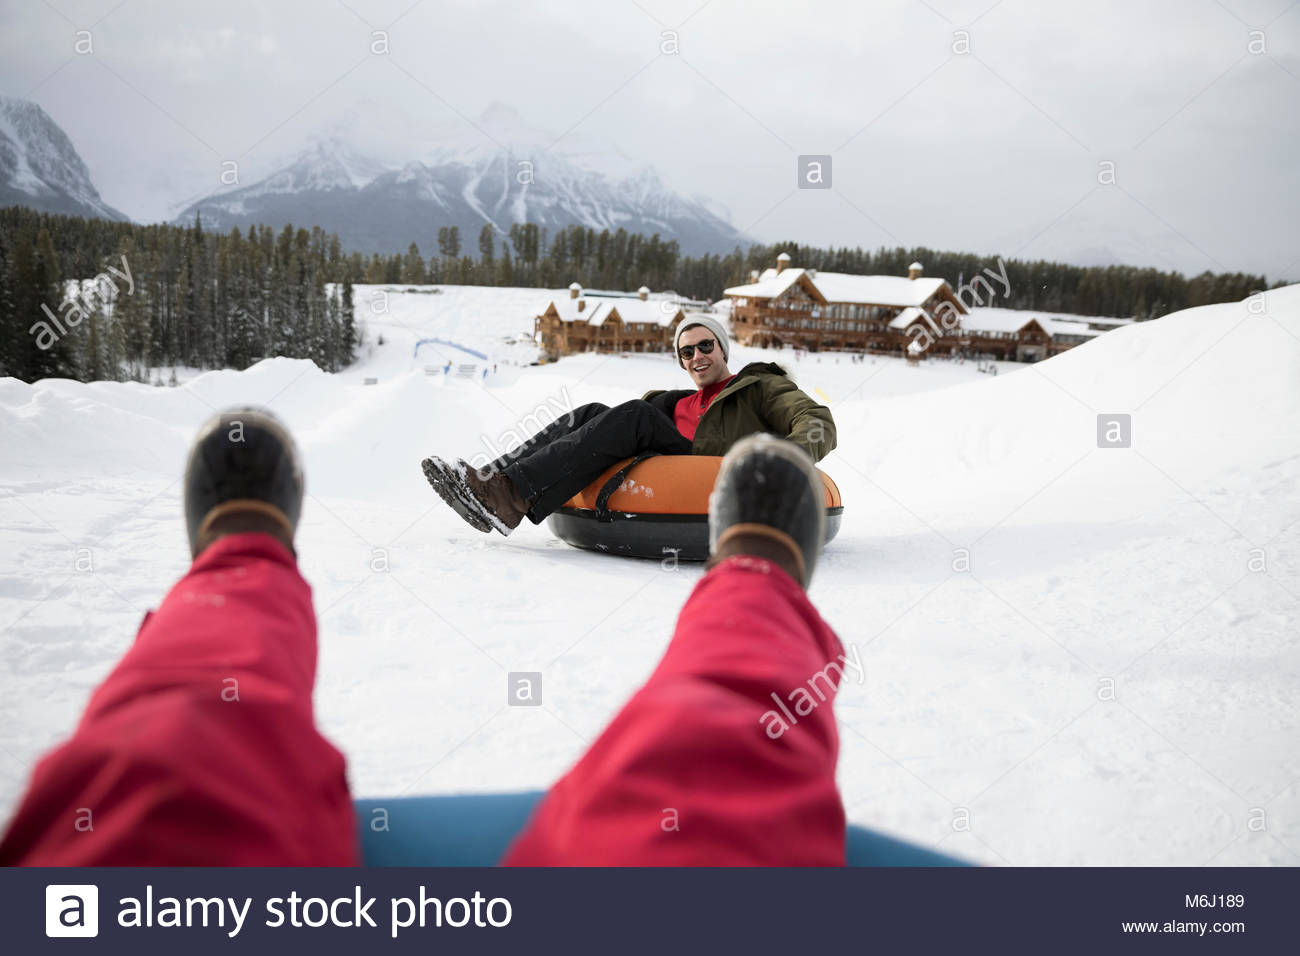 Personal perspective friends riding inner tubes in snow outside ski resort - Stock Image